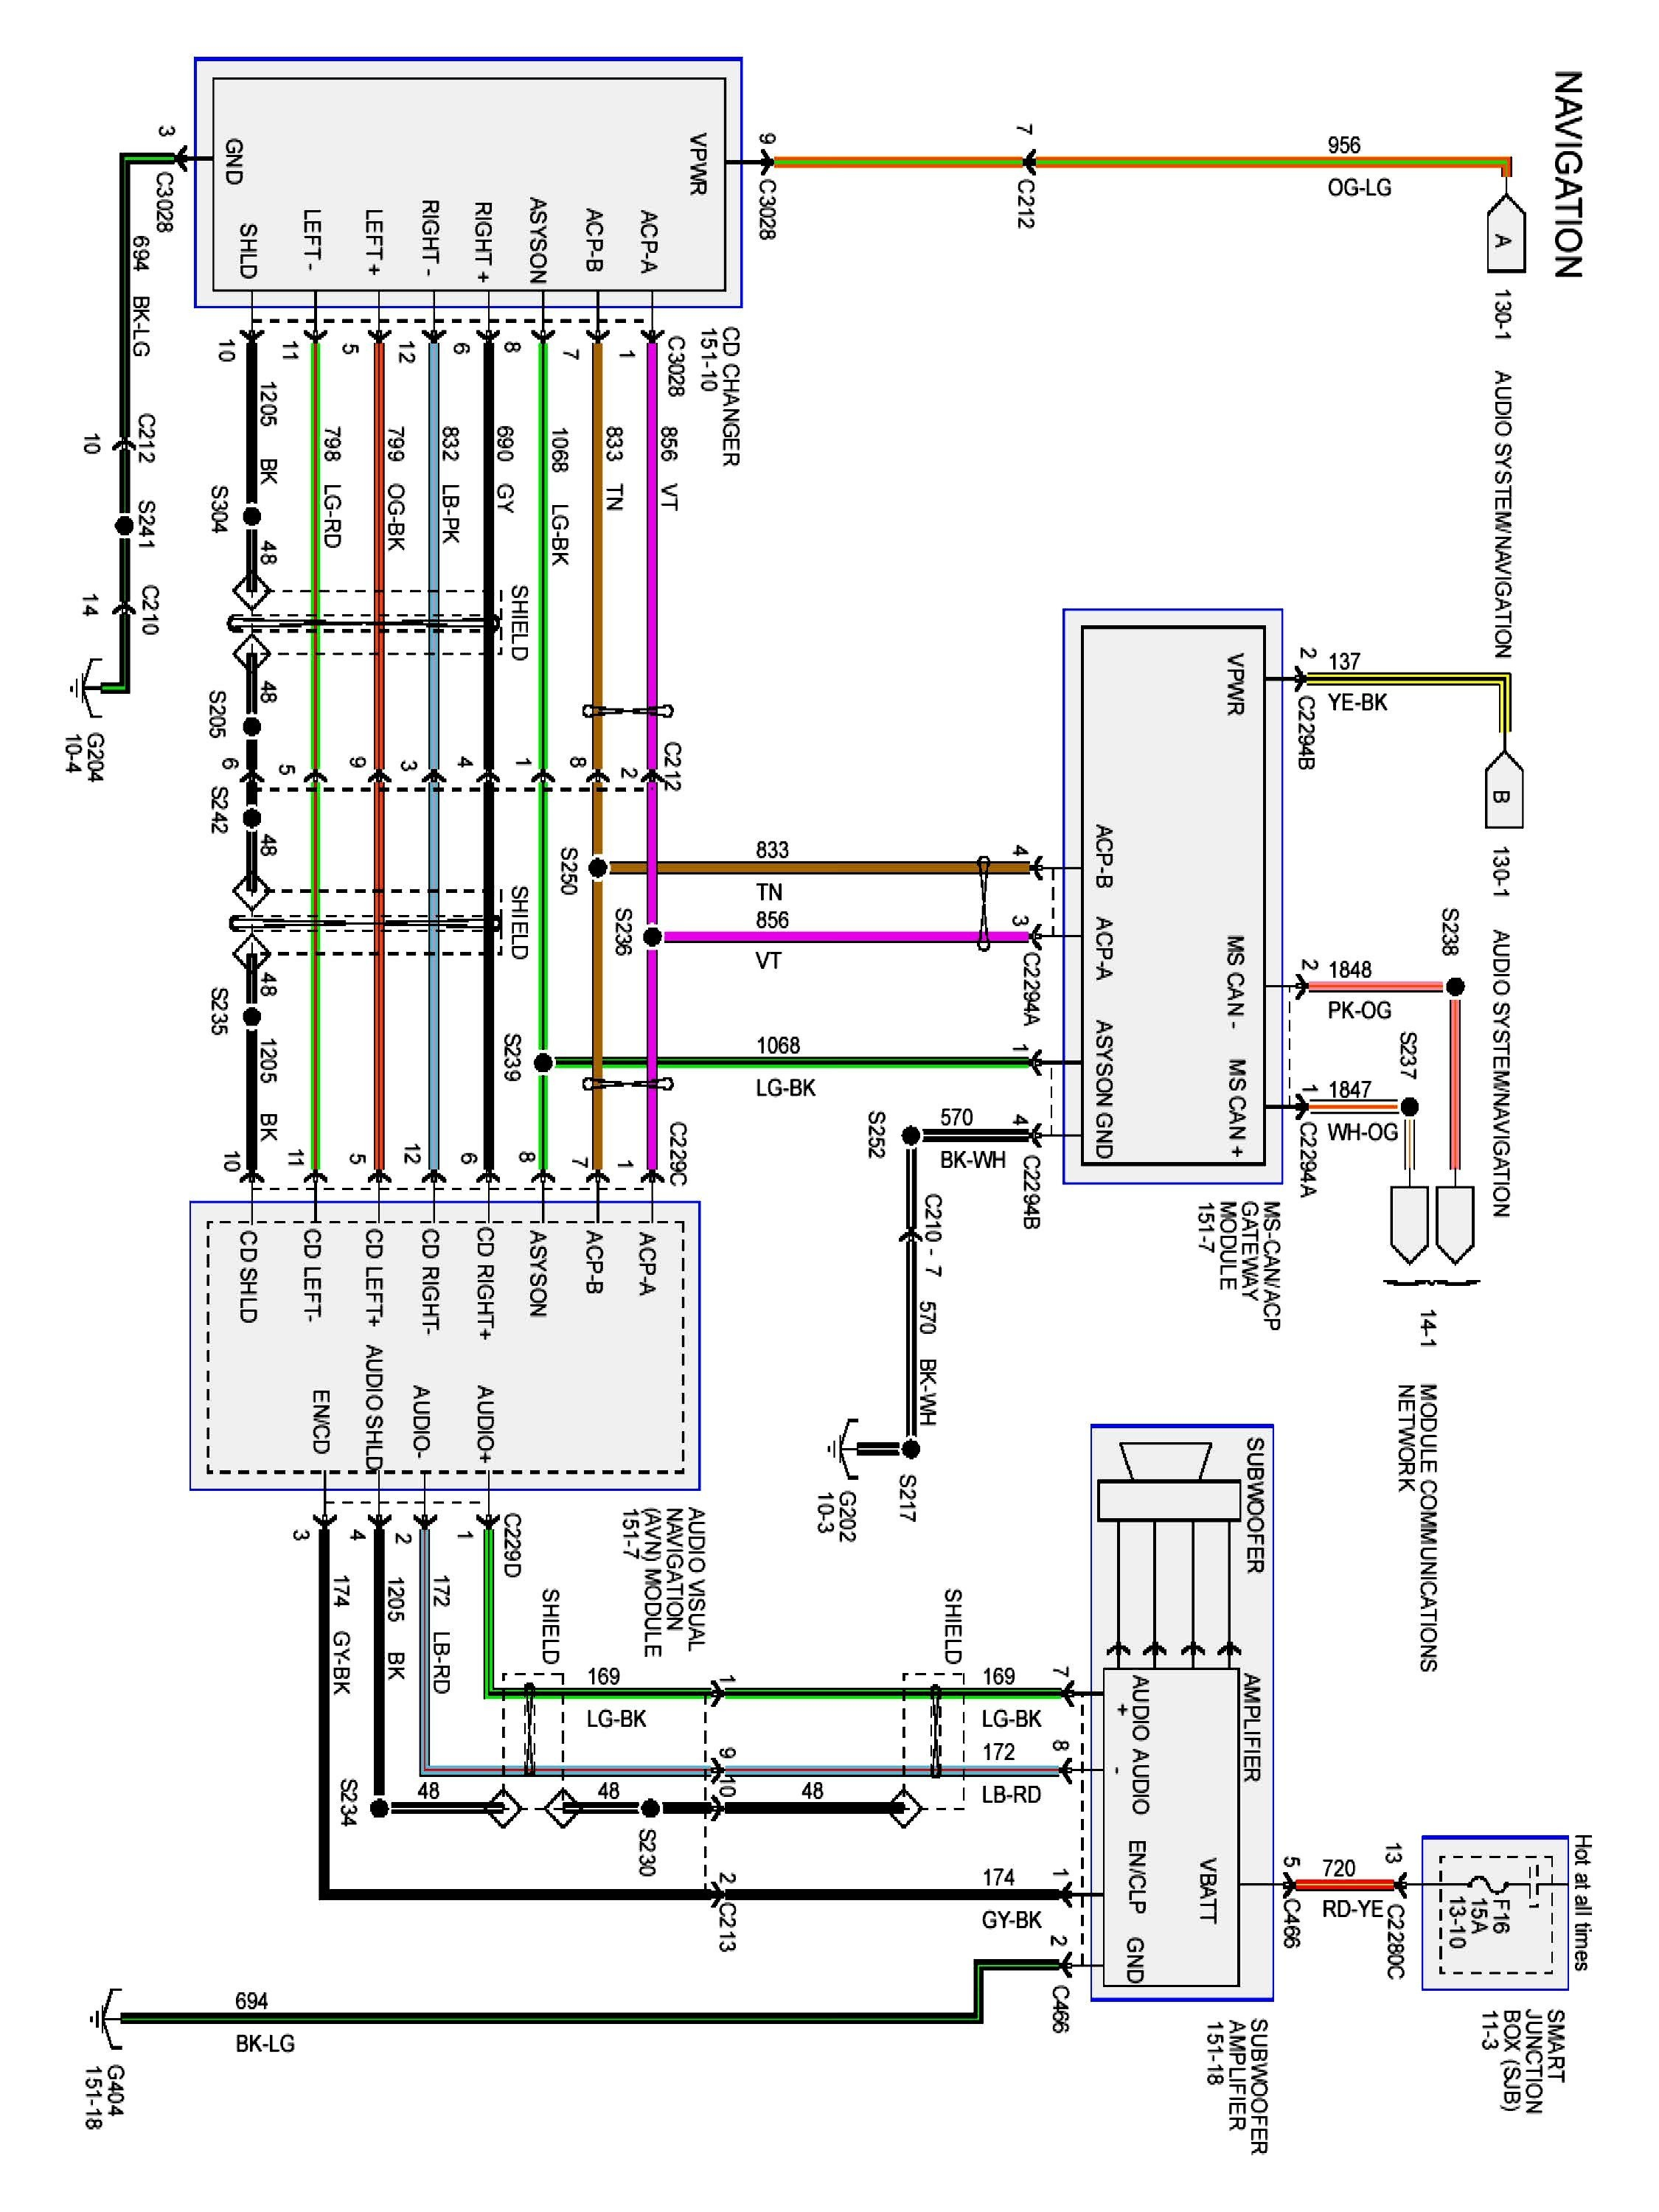 2002 ford F250 Radio Wiring Diagram Bucket 2002 F350 Superduty Electrical Wiring Diagrams Wiring Info • Of 2002 ford F250 Radio Wiring Diagram